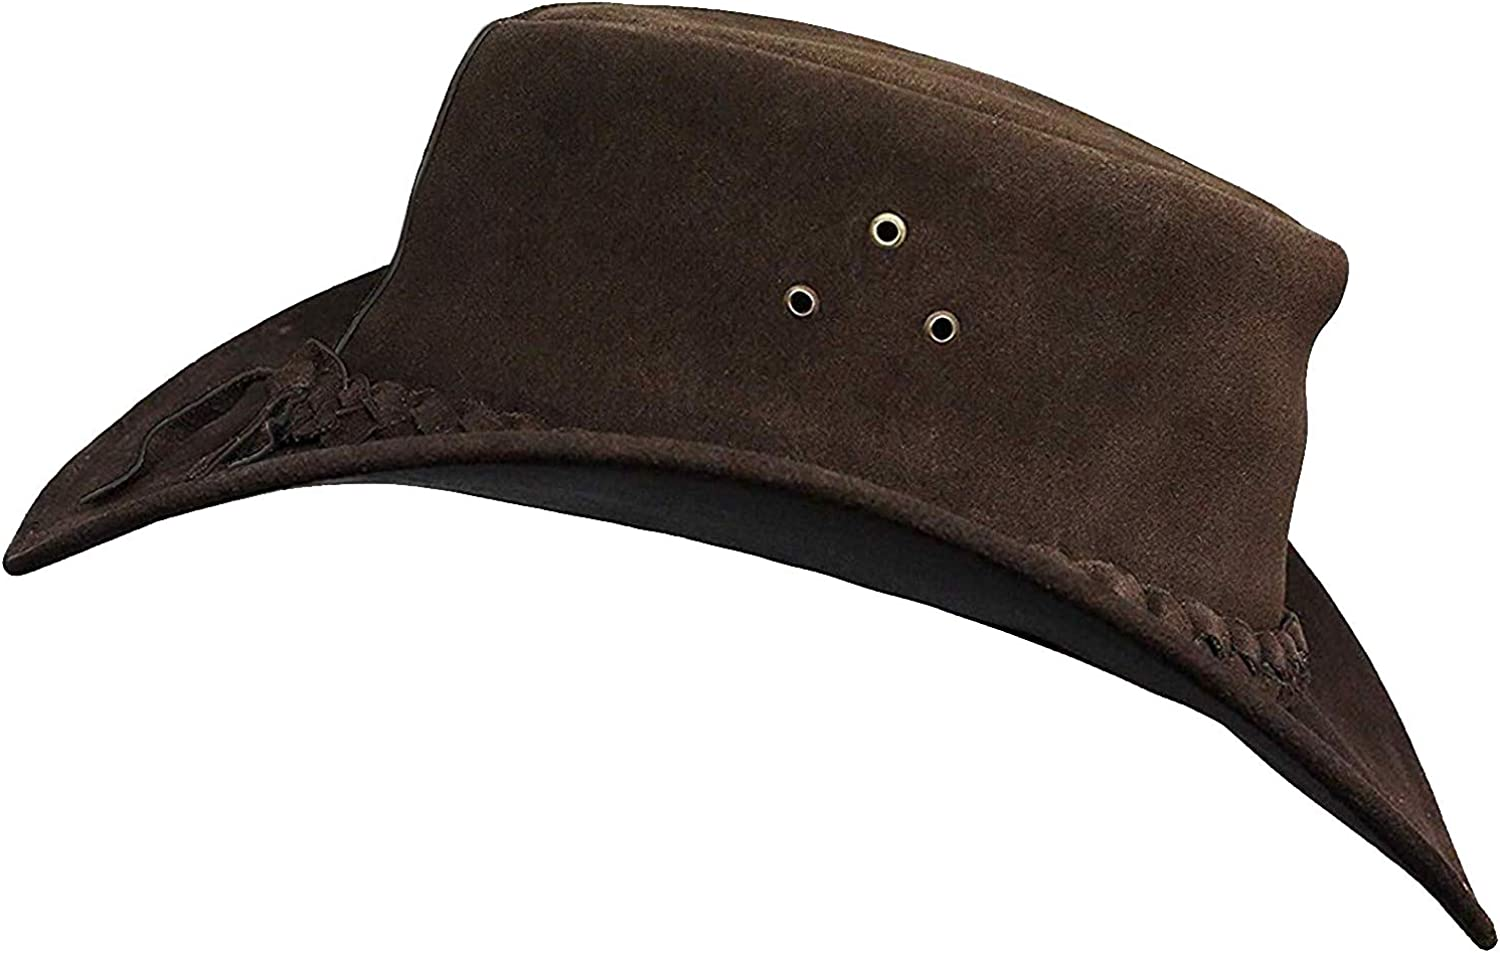 BRANDSLOCK Cowboy hat for Men and Women Suede Leather Western Outback Outdoor Aussie Bush hat with Chin Strap